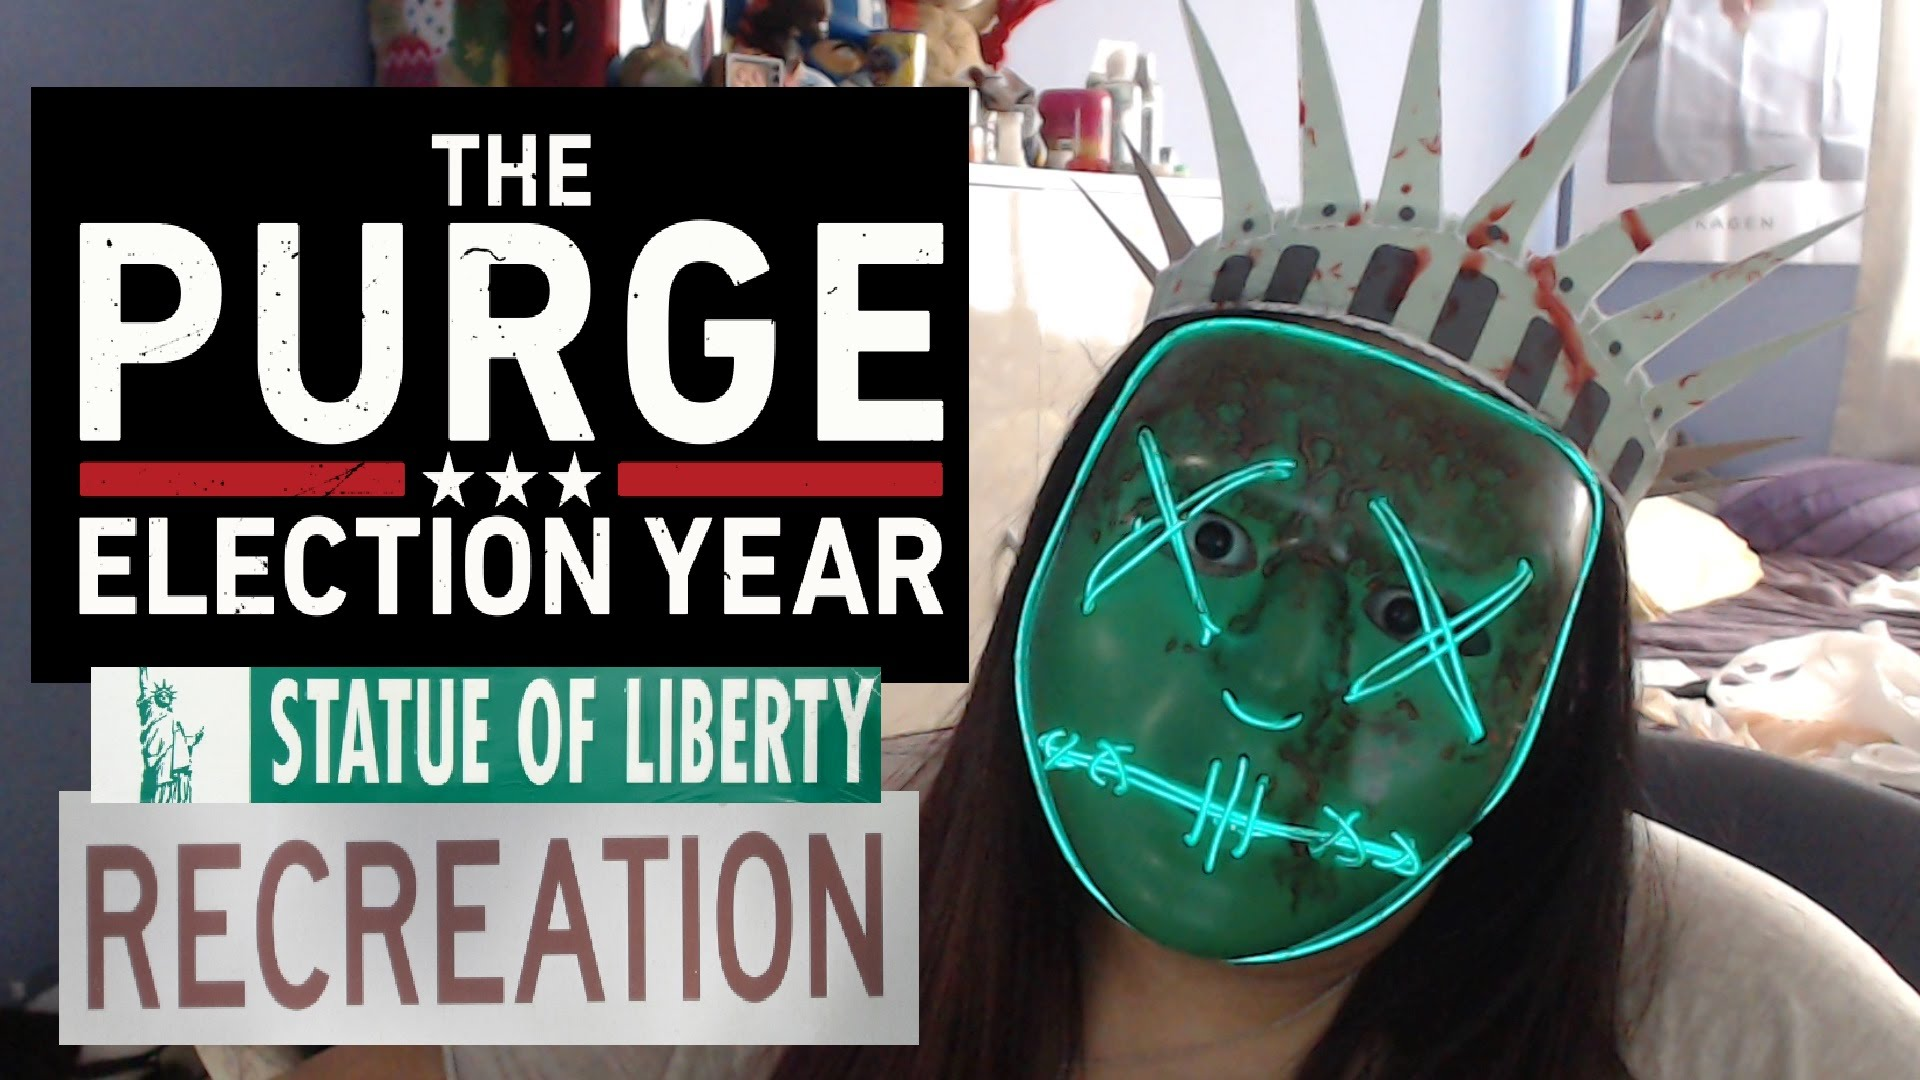 Drawn statue of liberty diy Of YouTube of The purge